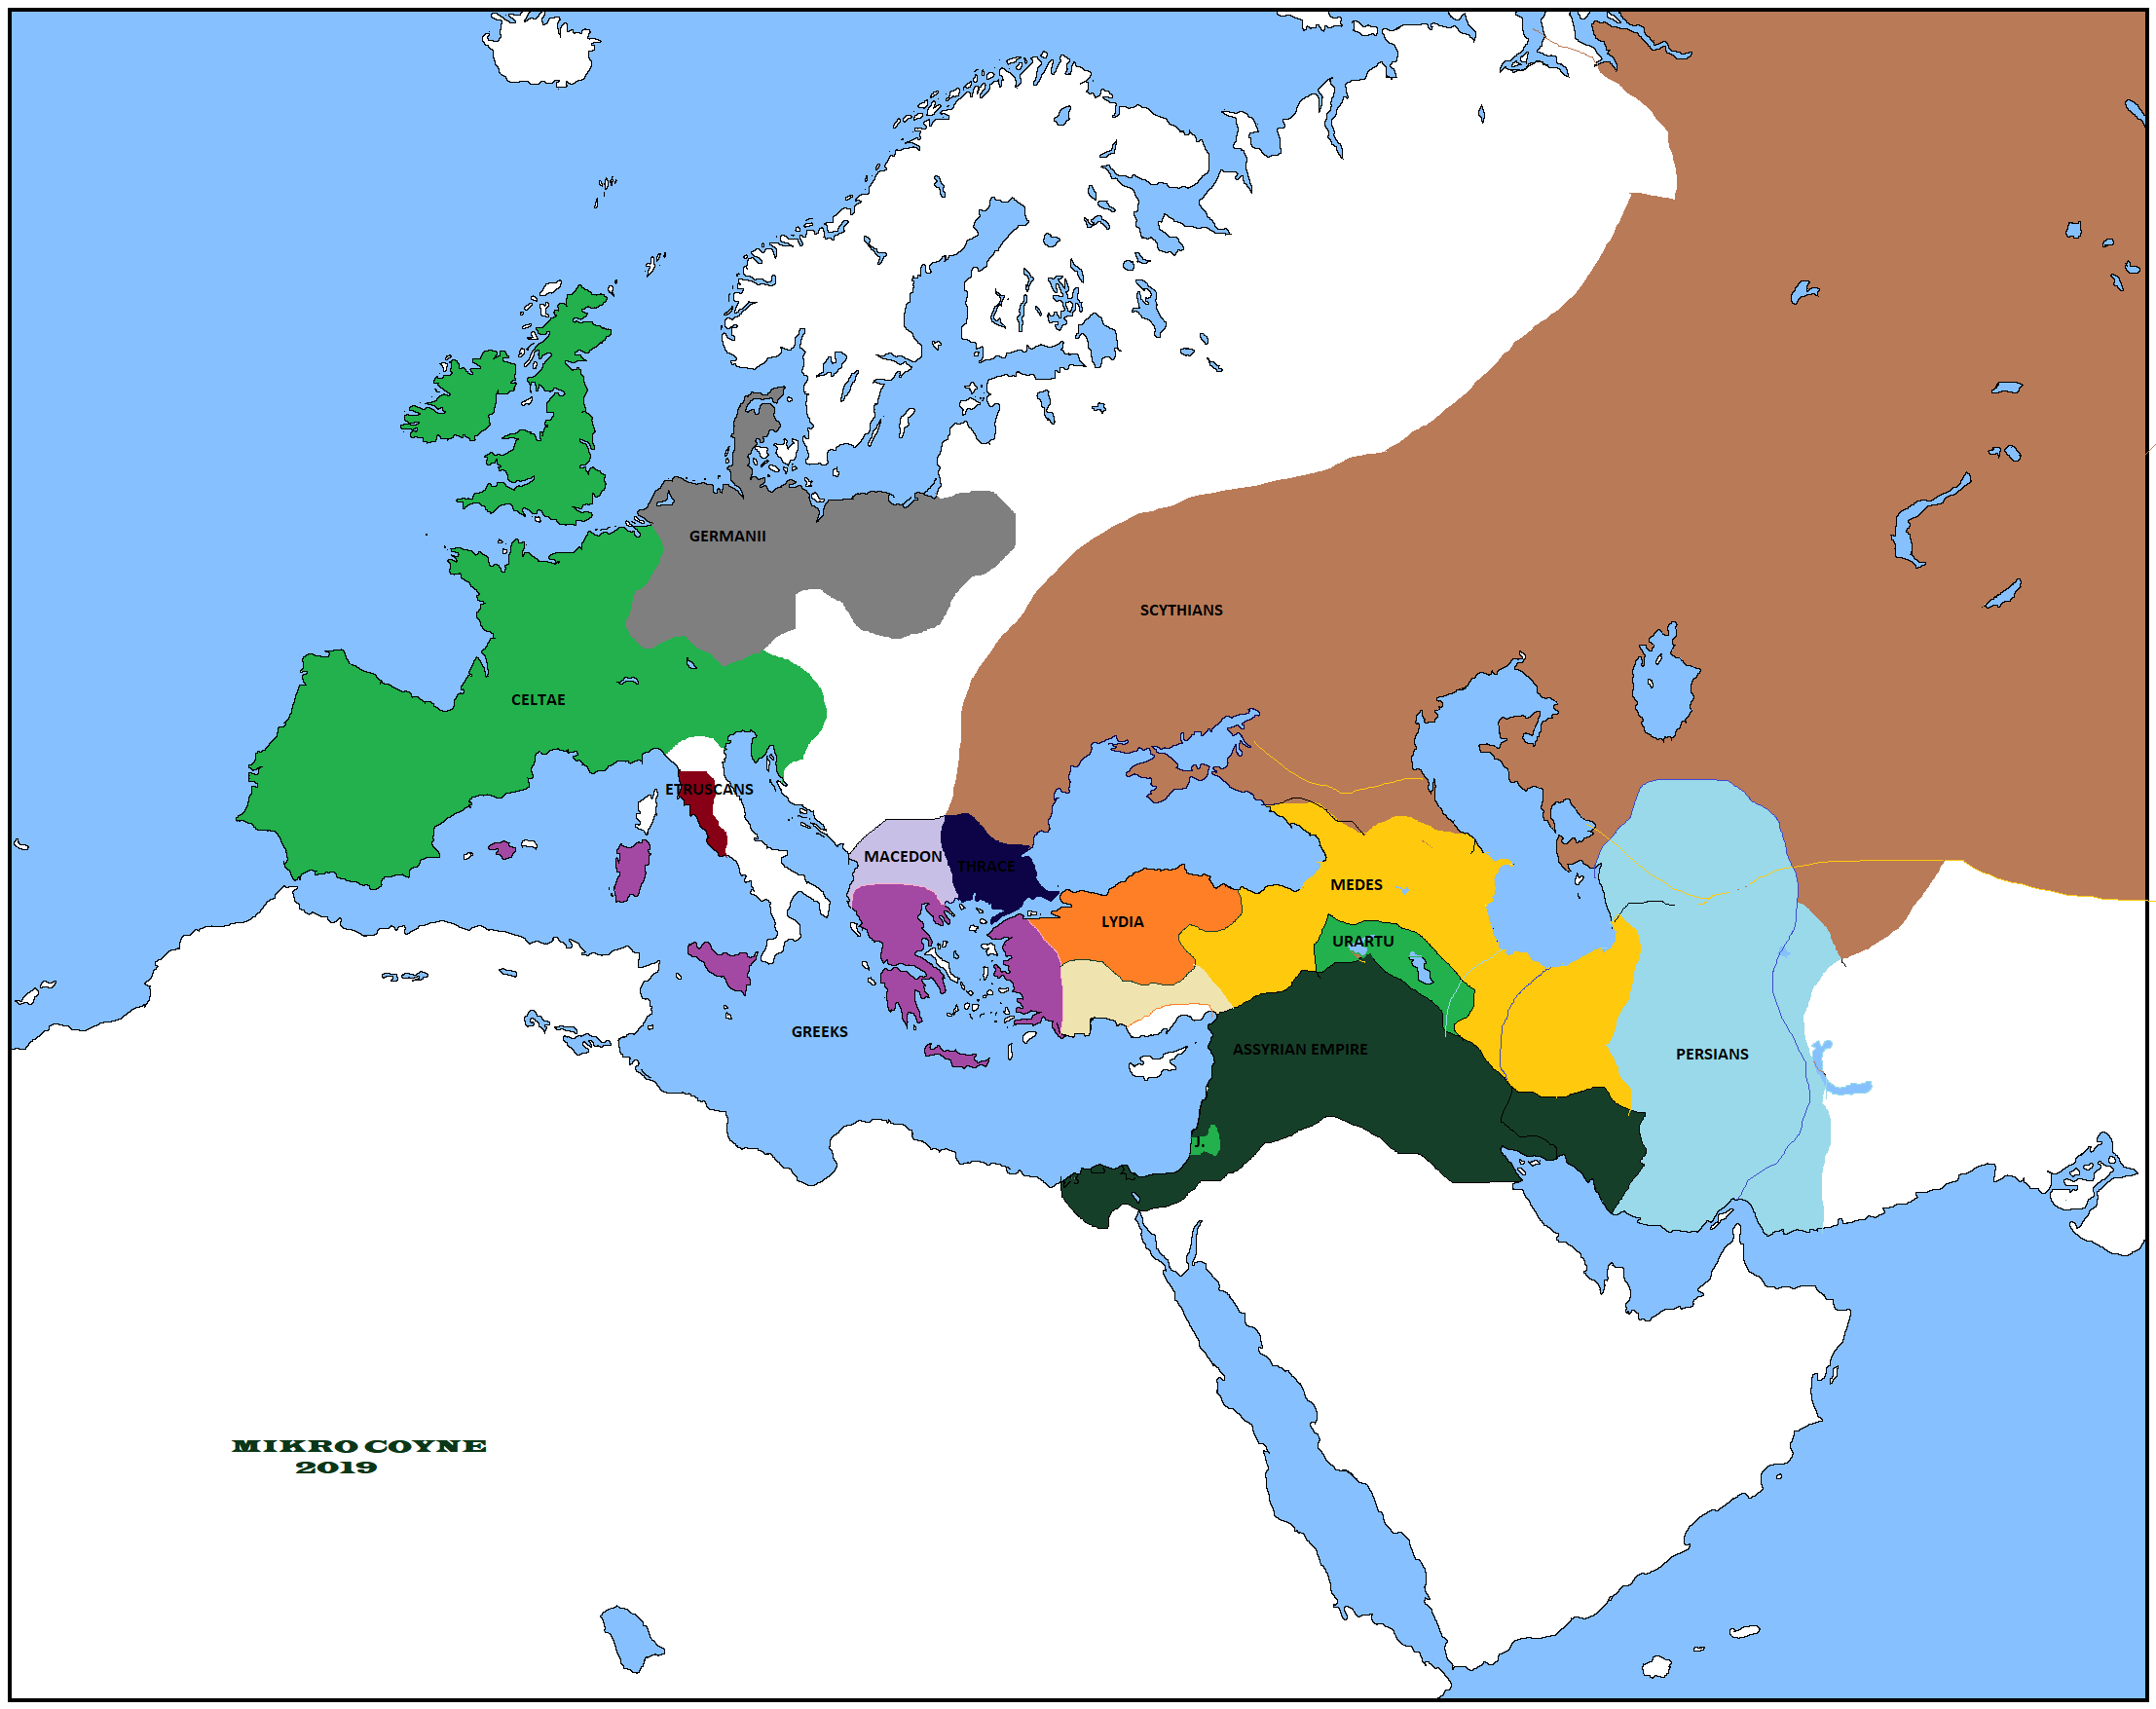 assyrian empire and elam 1.png